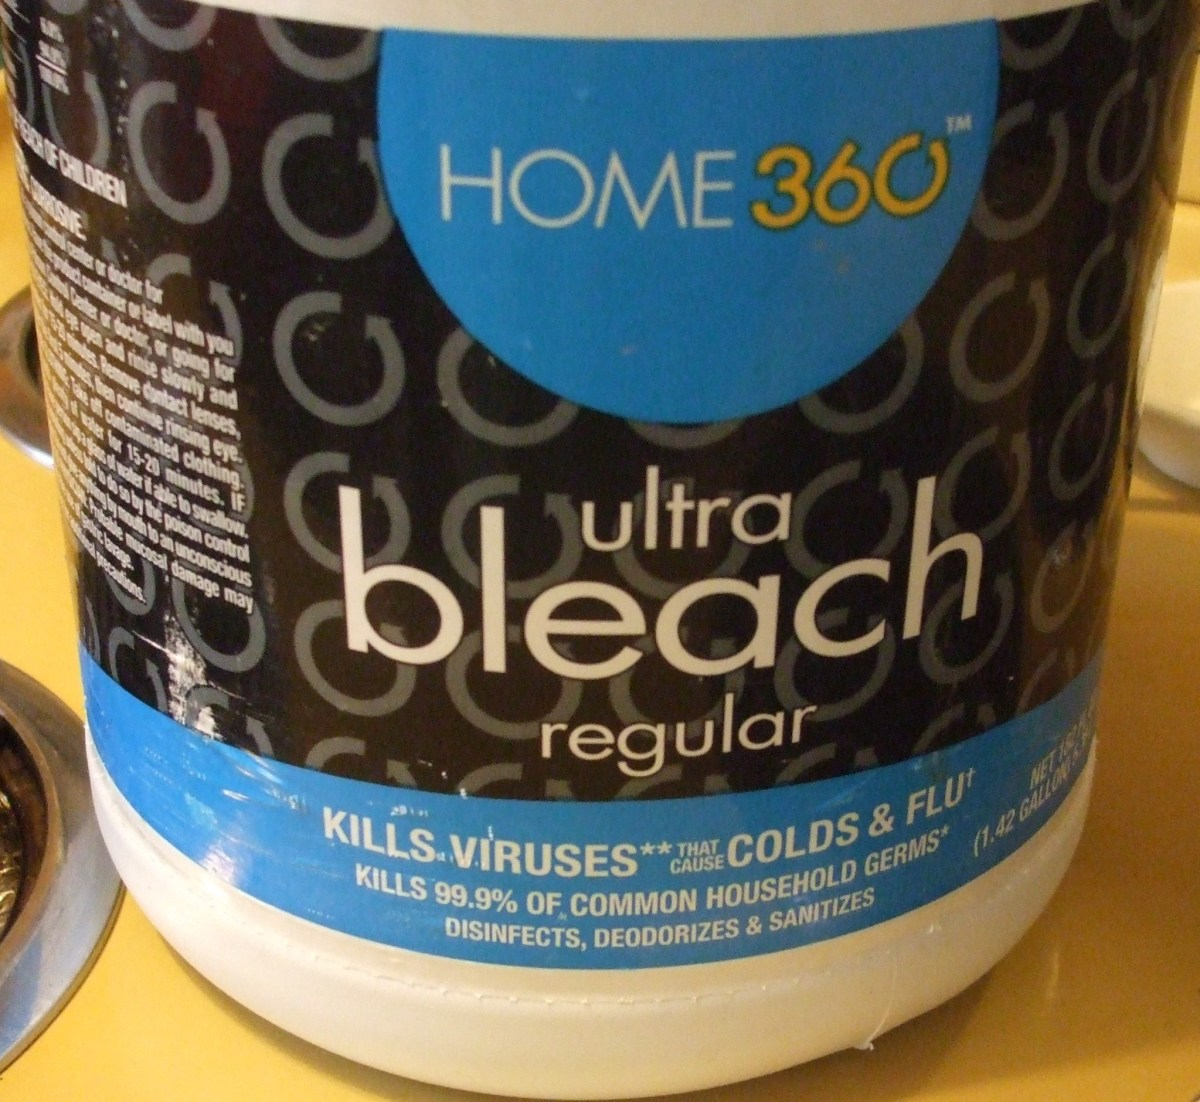 Household bleach is good for many uses, but NOT for mold removal.